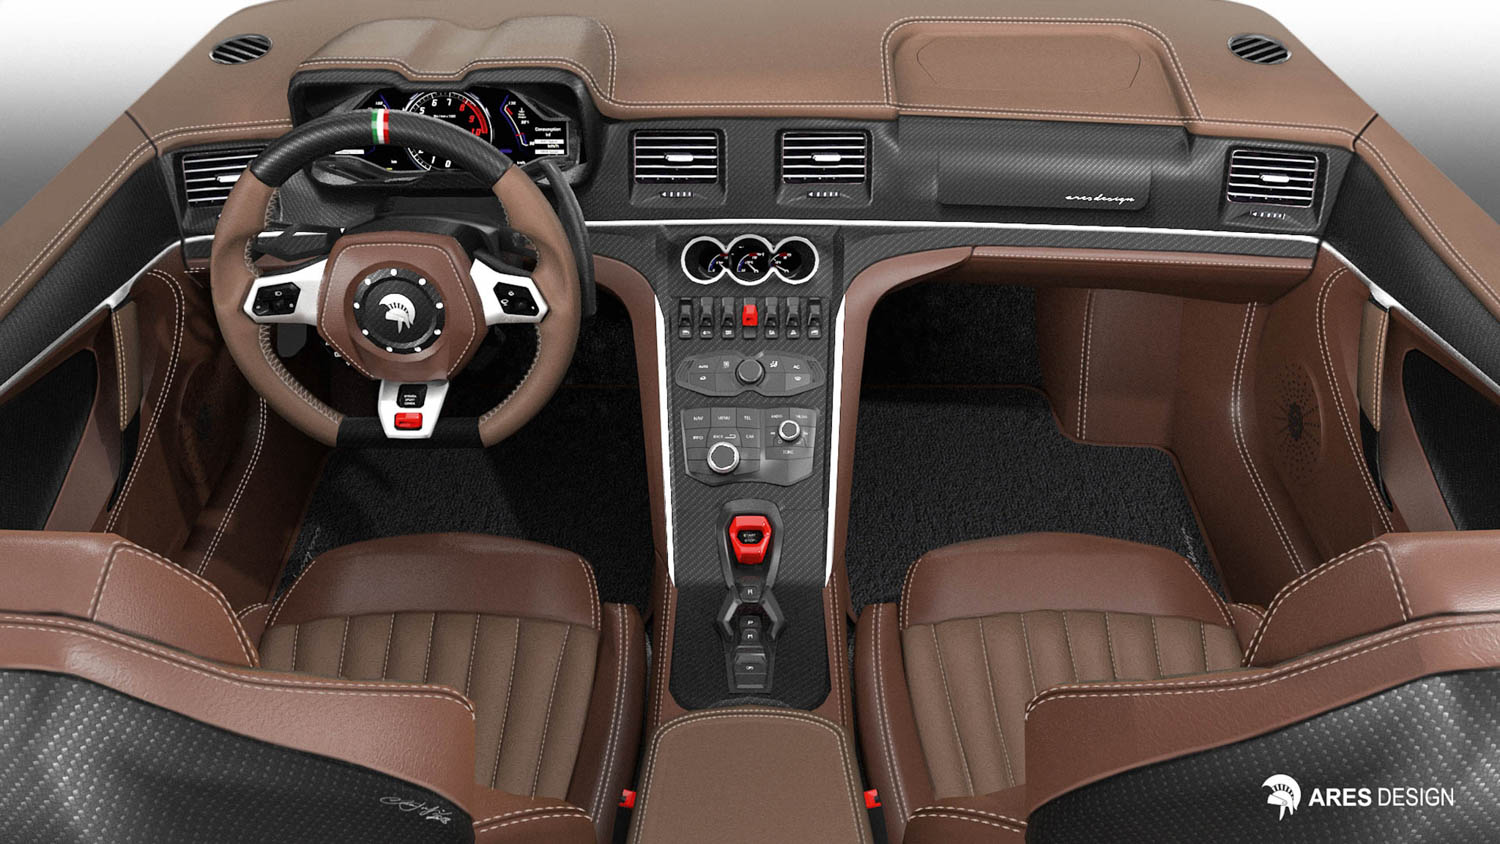 Ares Design Panther ProgettoUno interior render